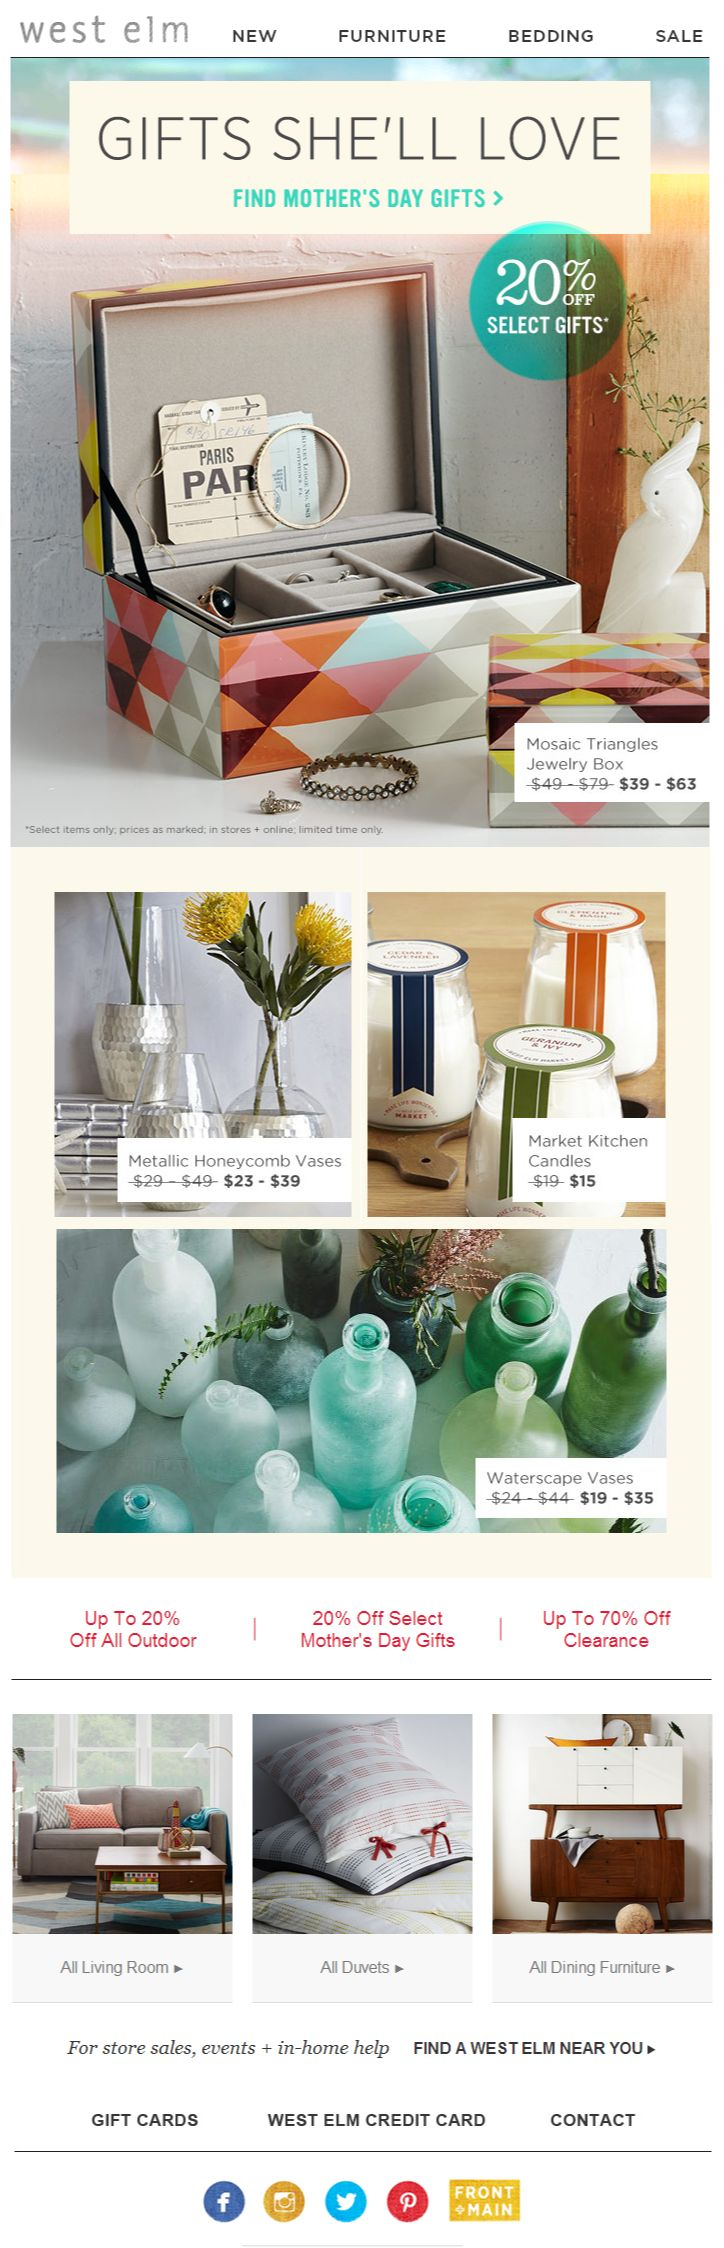 West elm newsletter design, email #home #mother newsletter